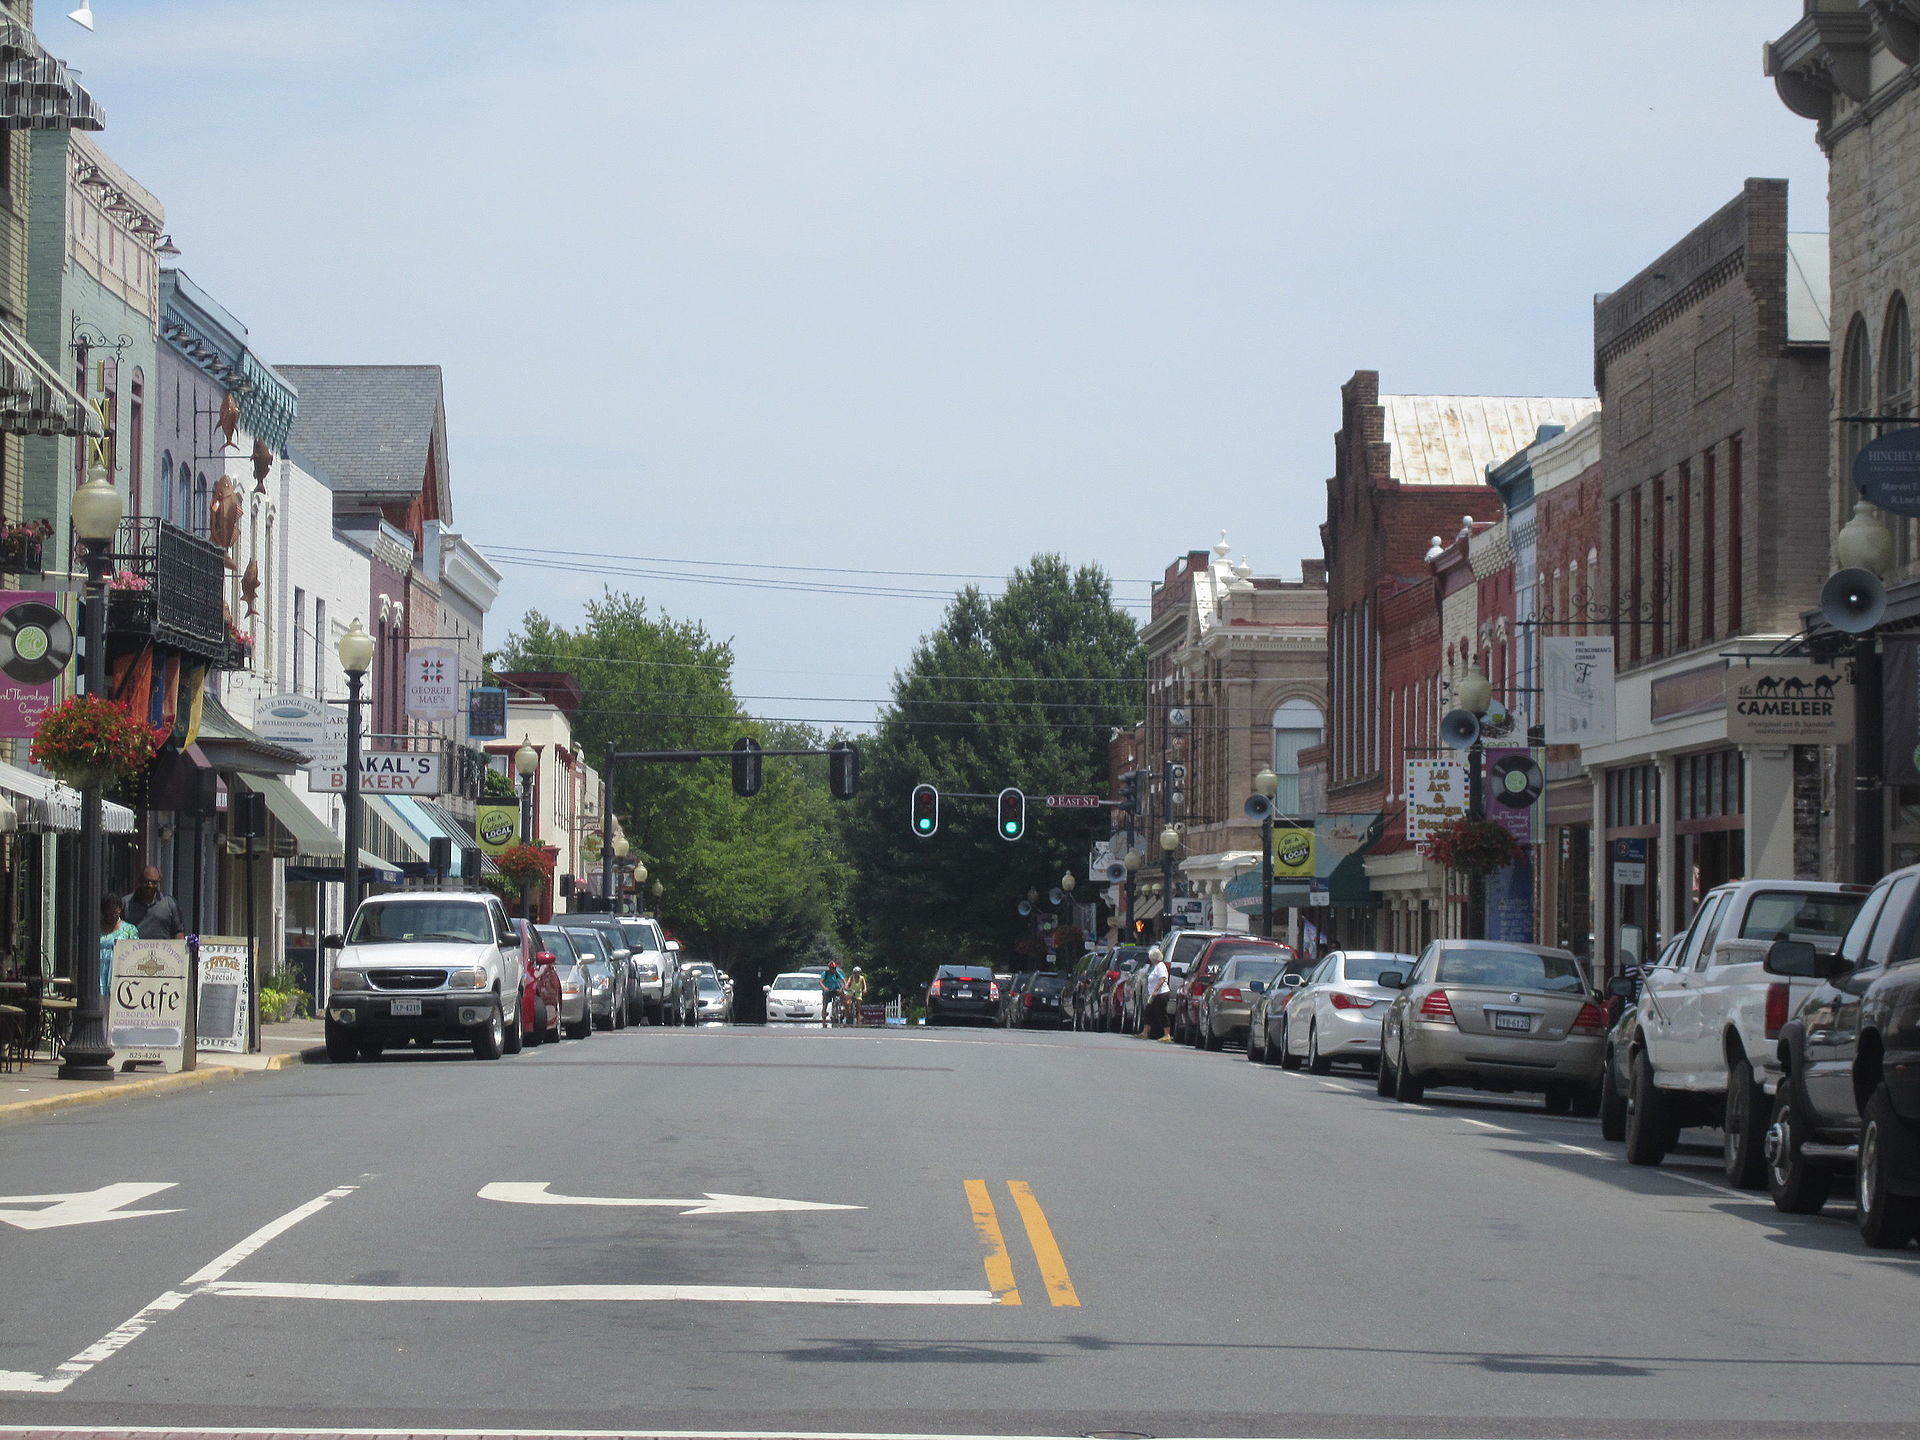 Another_view_of_downtown_Culpeper,_VA_IMG_4309